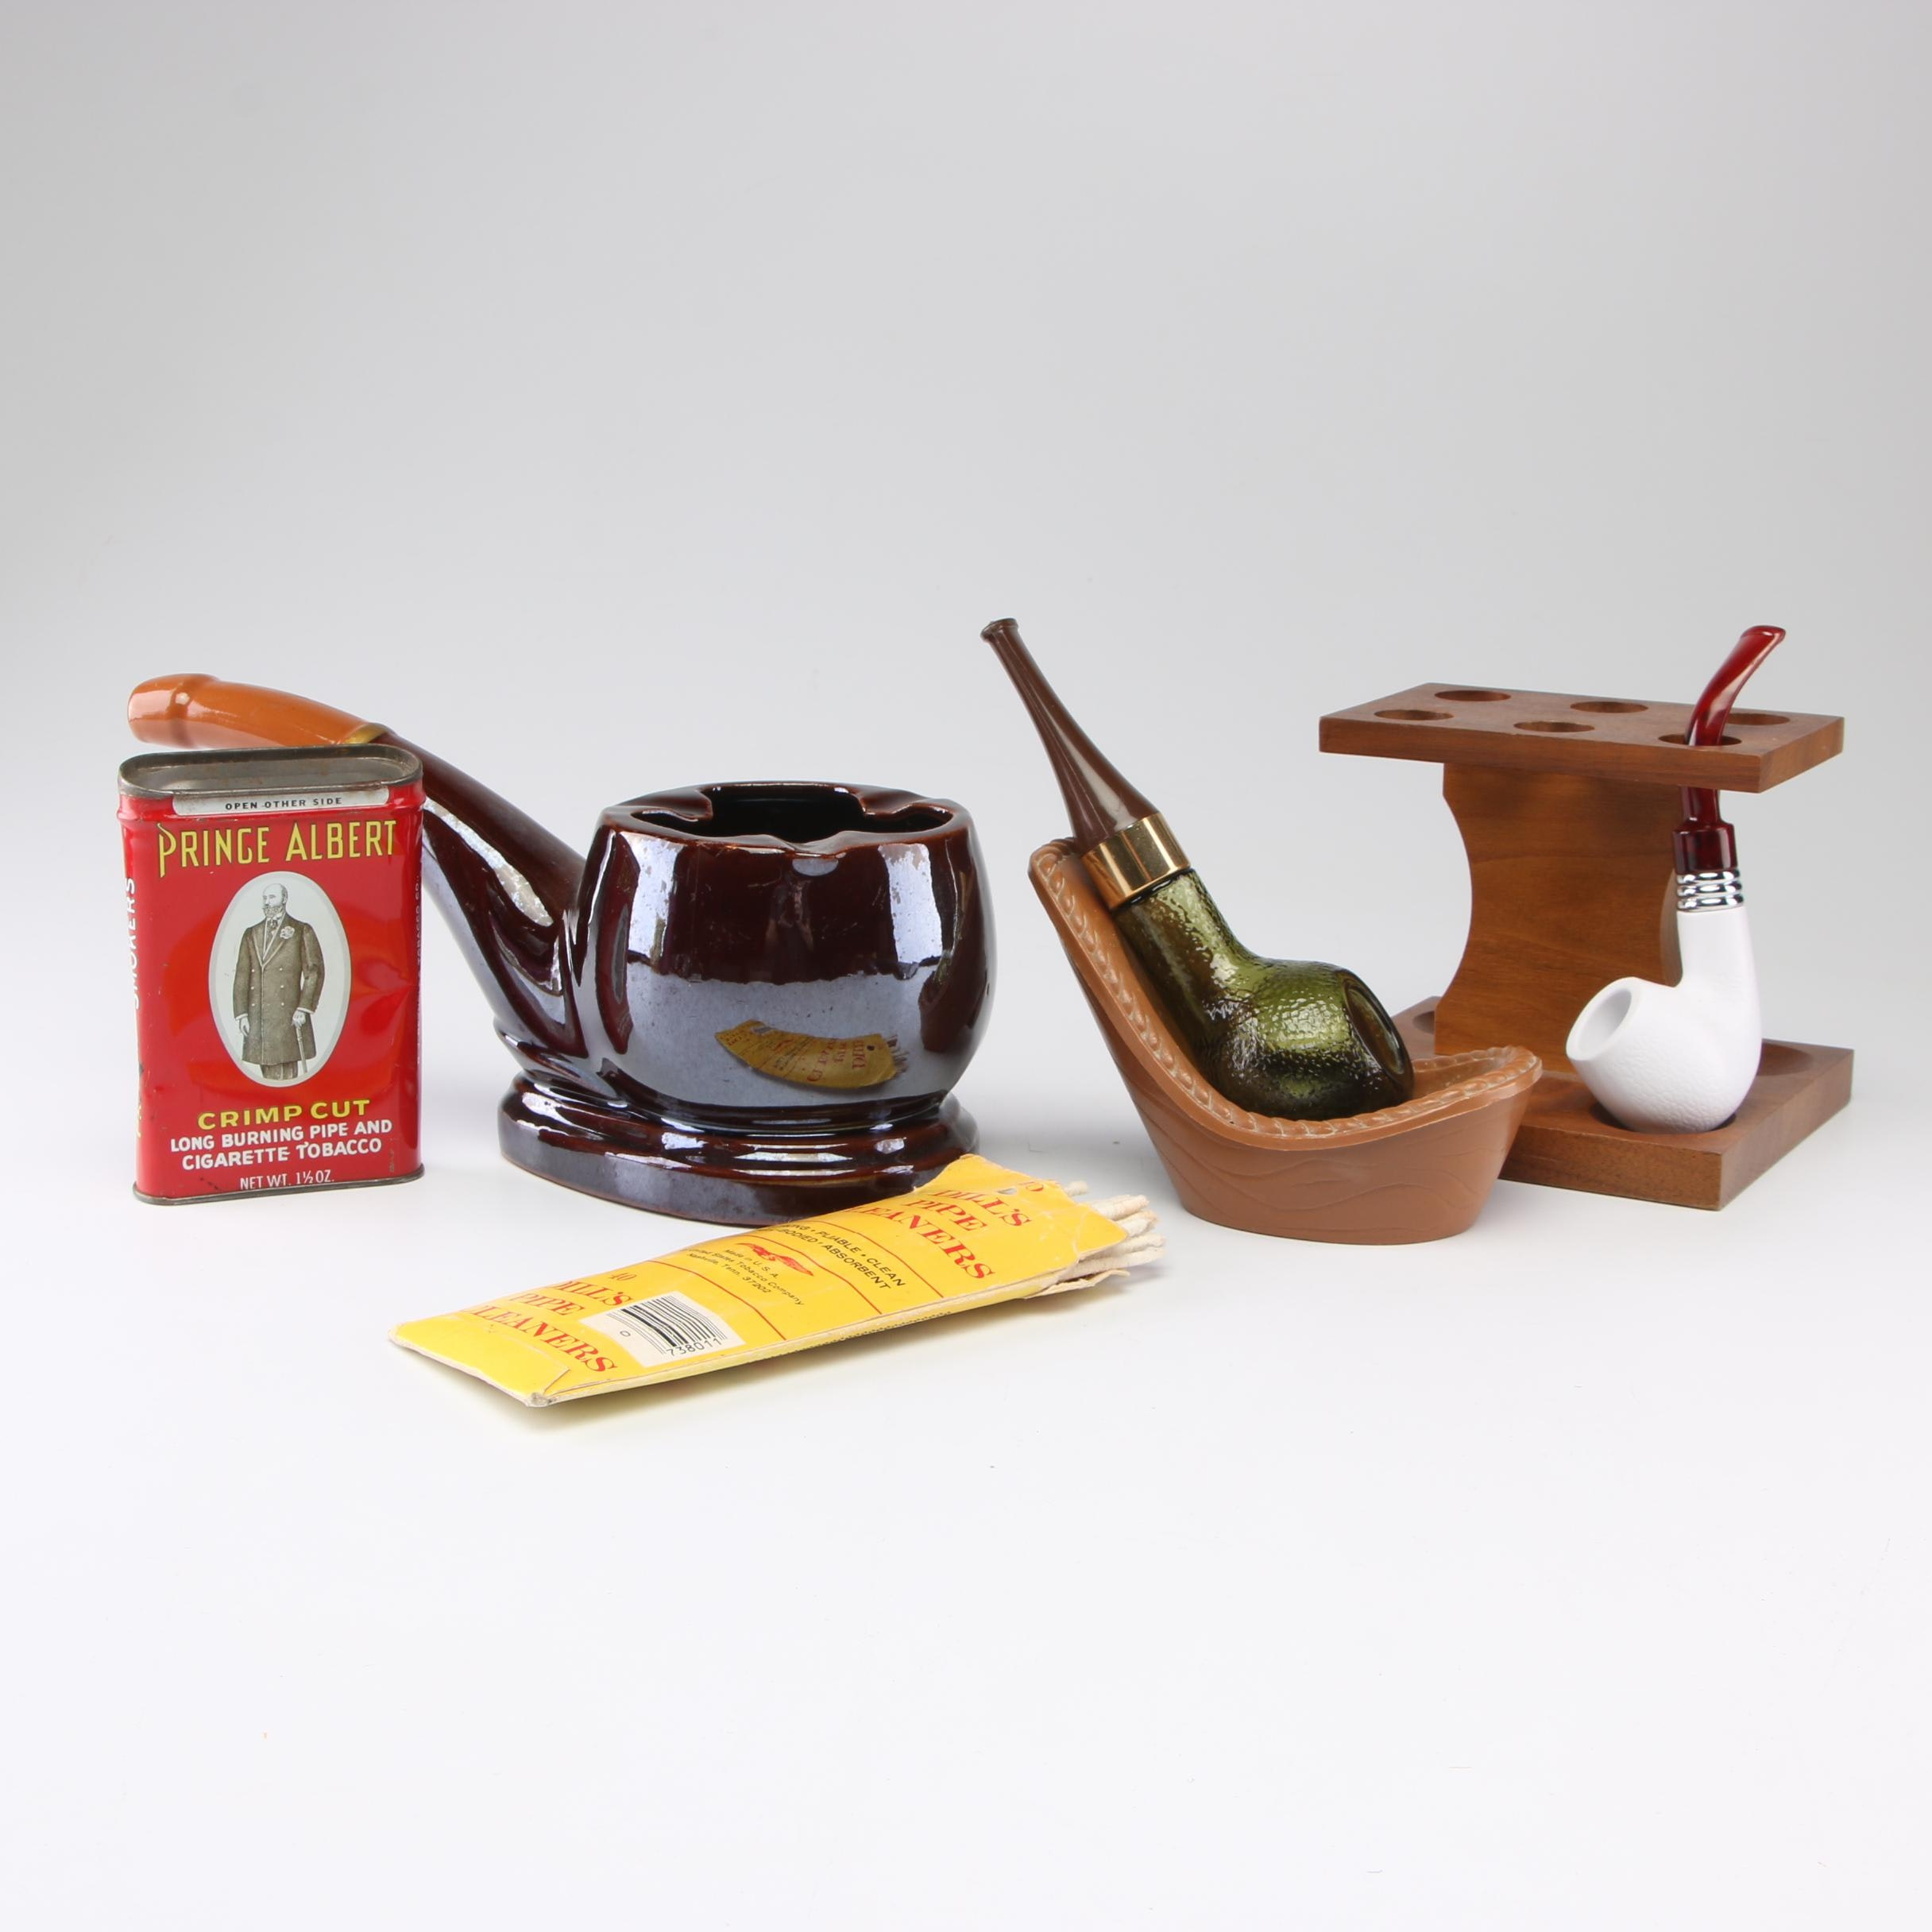 Pipe Ashtray, Holder and Other Tobacciana